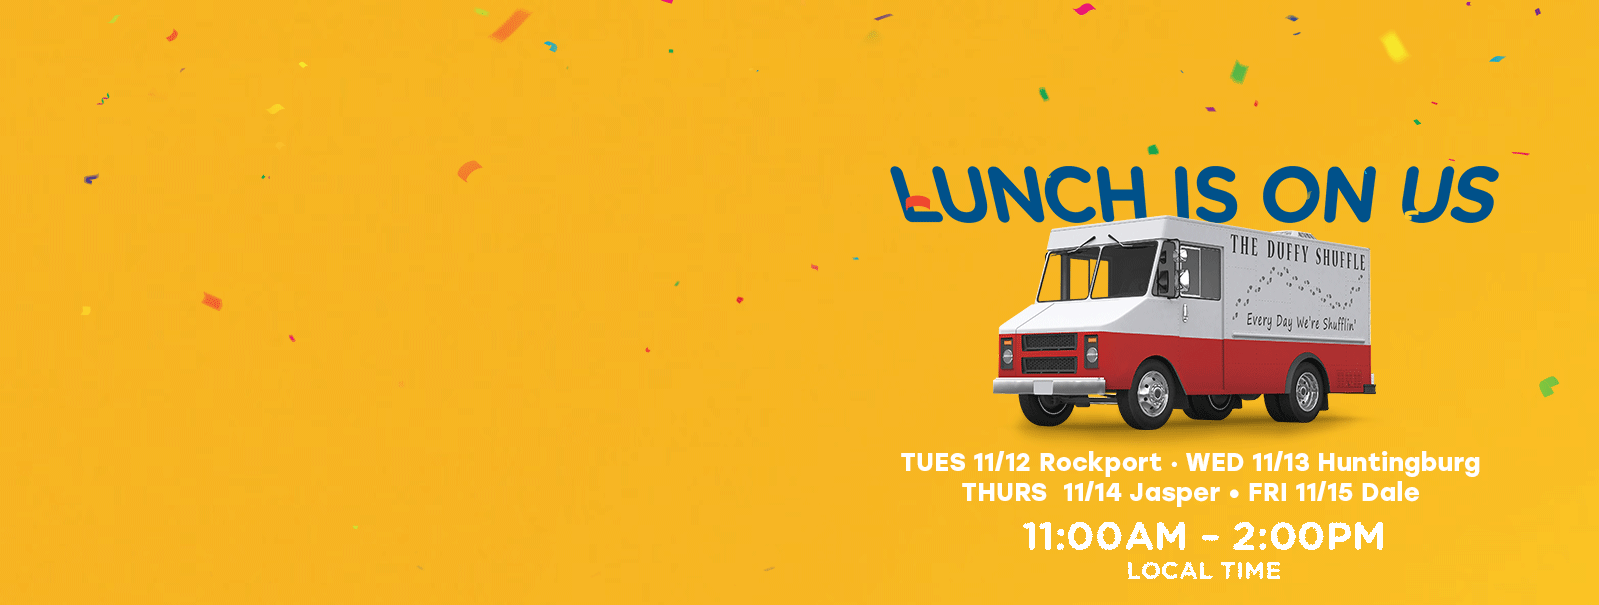 Lunch is on us! Tuesday 11/12 in Rockport, Wednesday 11/13 in Huntingburg, Thursday 11/14 in Jasper, Friday 11/15 in Dale